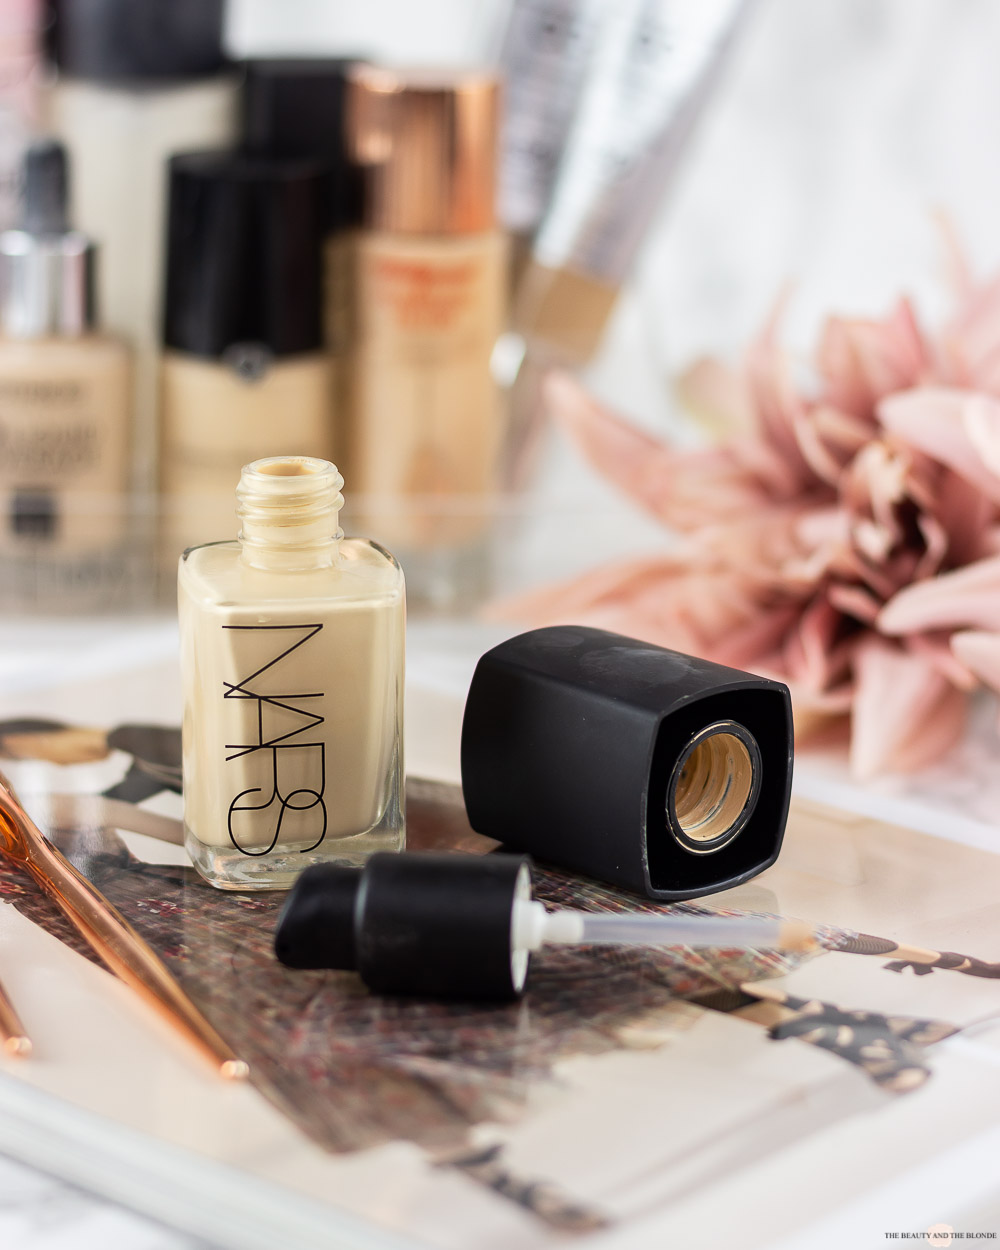 NARS Sheer Glow Foundation Review